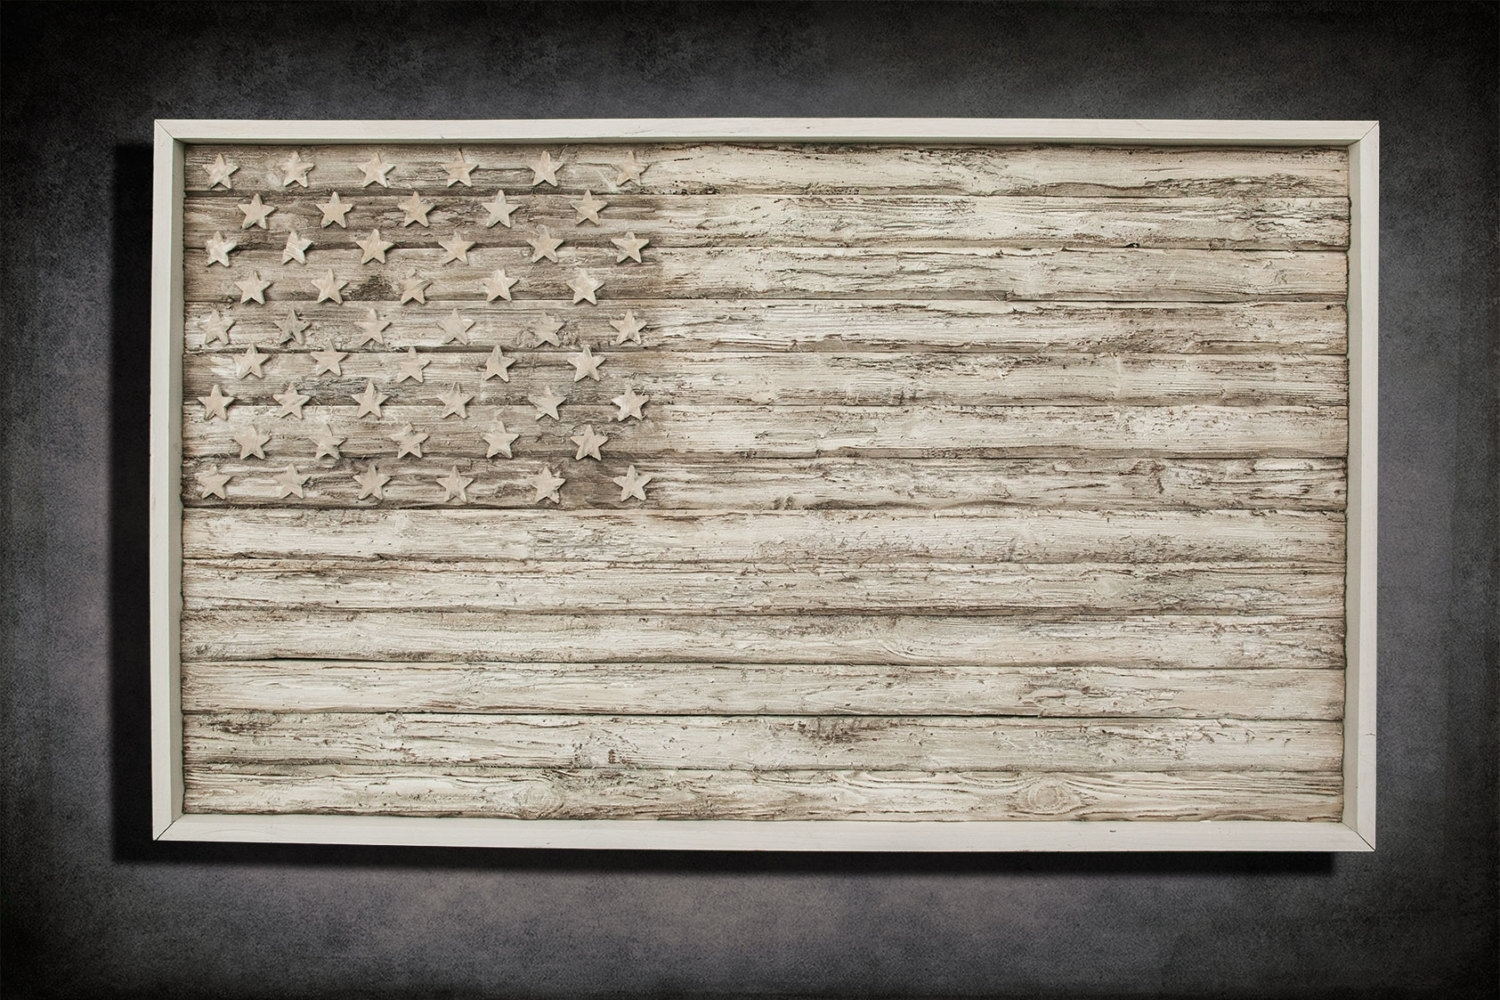 American Flag, Weathered Wood, One Of A Kind, 3d, Wooden, Vintage With Latest Wooden American Flag Wall Art (View 16 of 20)